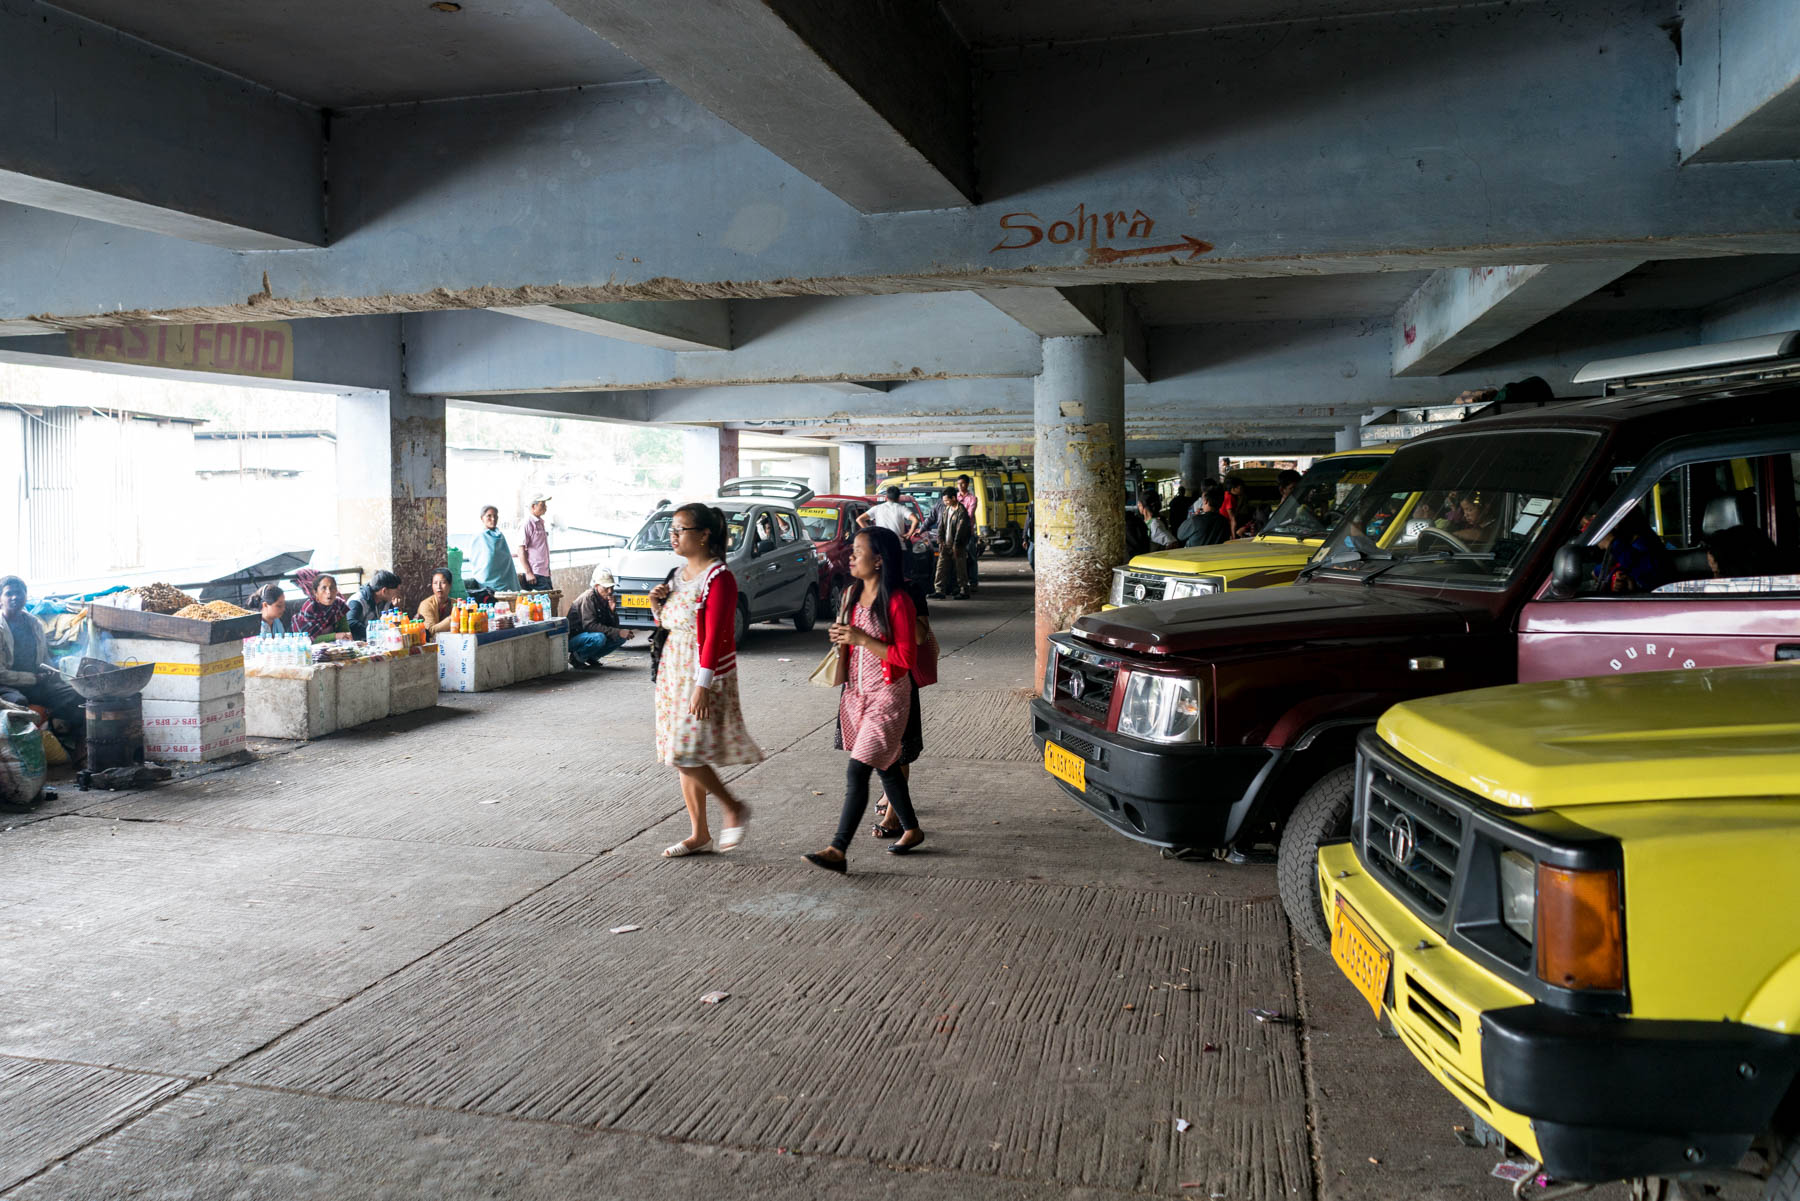 How to get from Guwahati to Shillong and Cherrapunjee in Meghalaya, India - Shared Sumo stand in a parking garage in Shillong, Meghalaya, India - Lost With Purpose